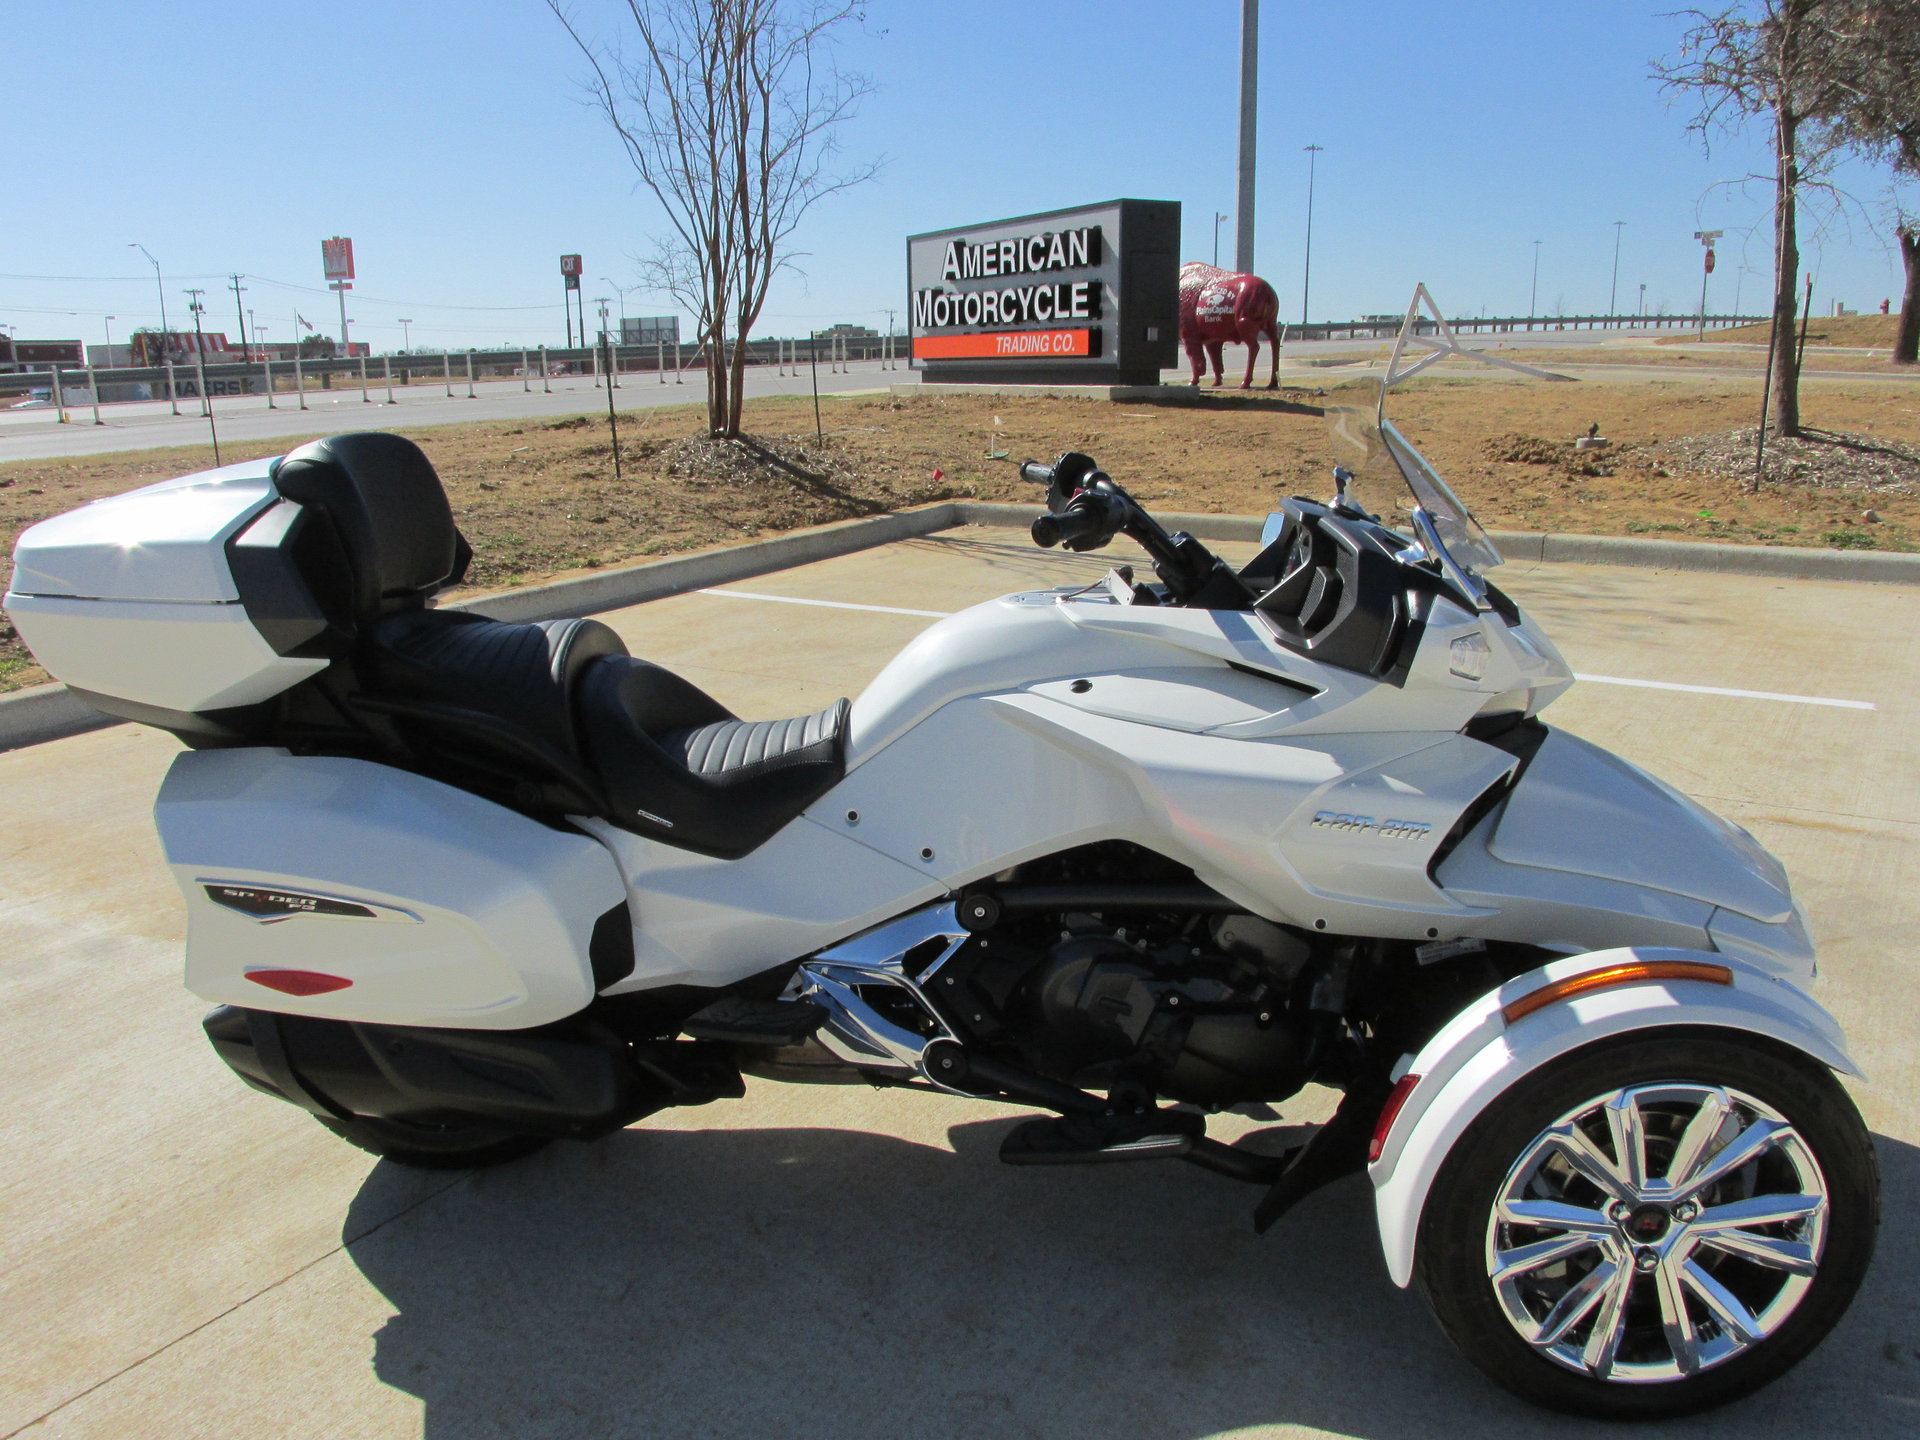 2017 can am spyderamerican motorcycle trading company used harley davidson motorcycles. Black Bedroom Furniture Sets. Home Design Ideas